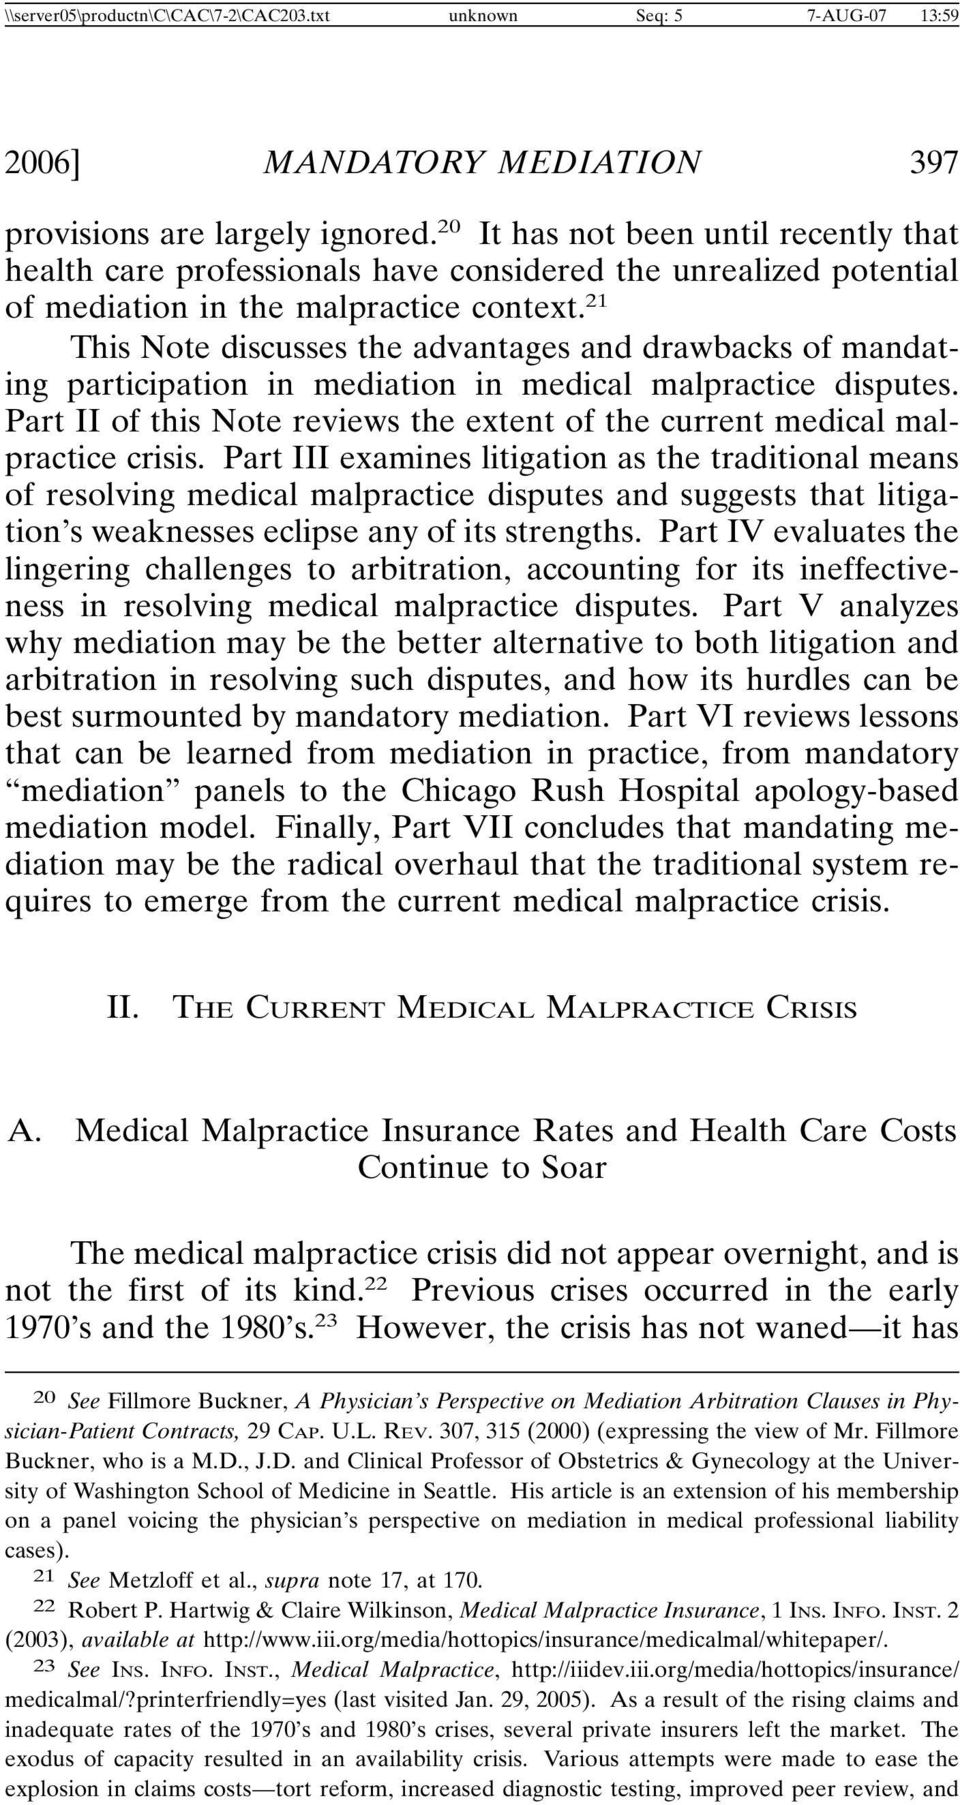 21 This Note discusses the advantages and drawbacks of mandating participation in mediation in medical malpractice disputes.